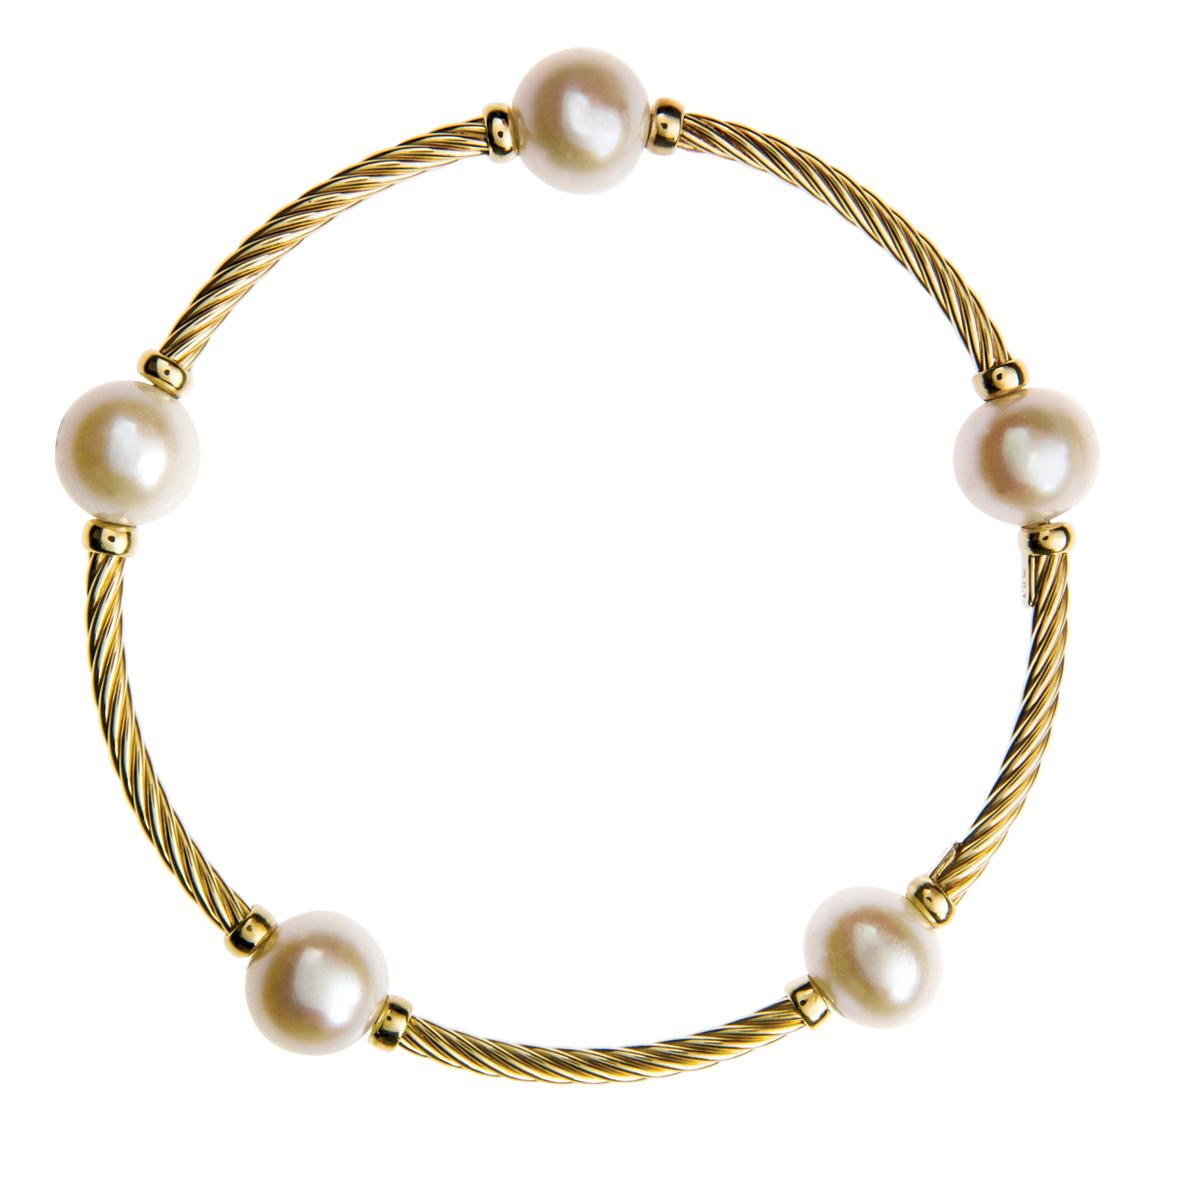 Vintage David Yurman Pearl Bangle